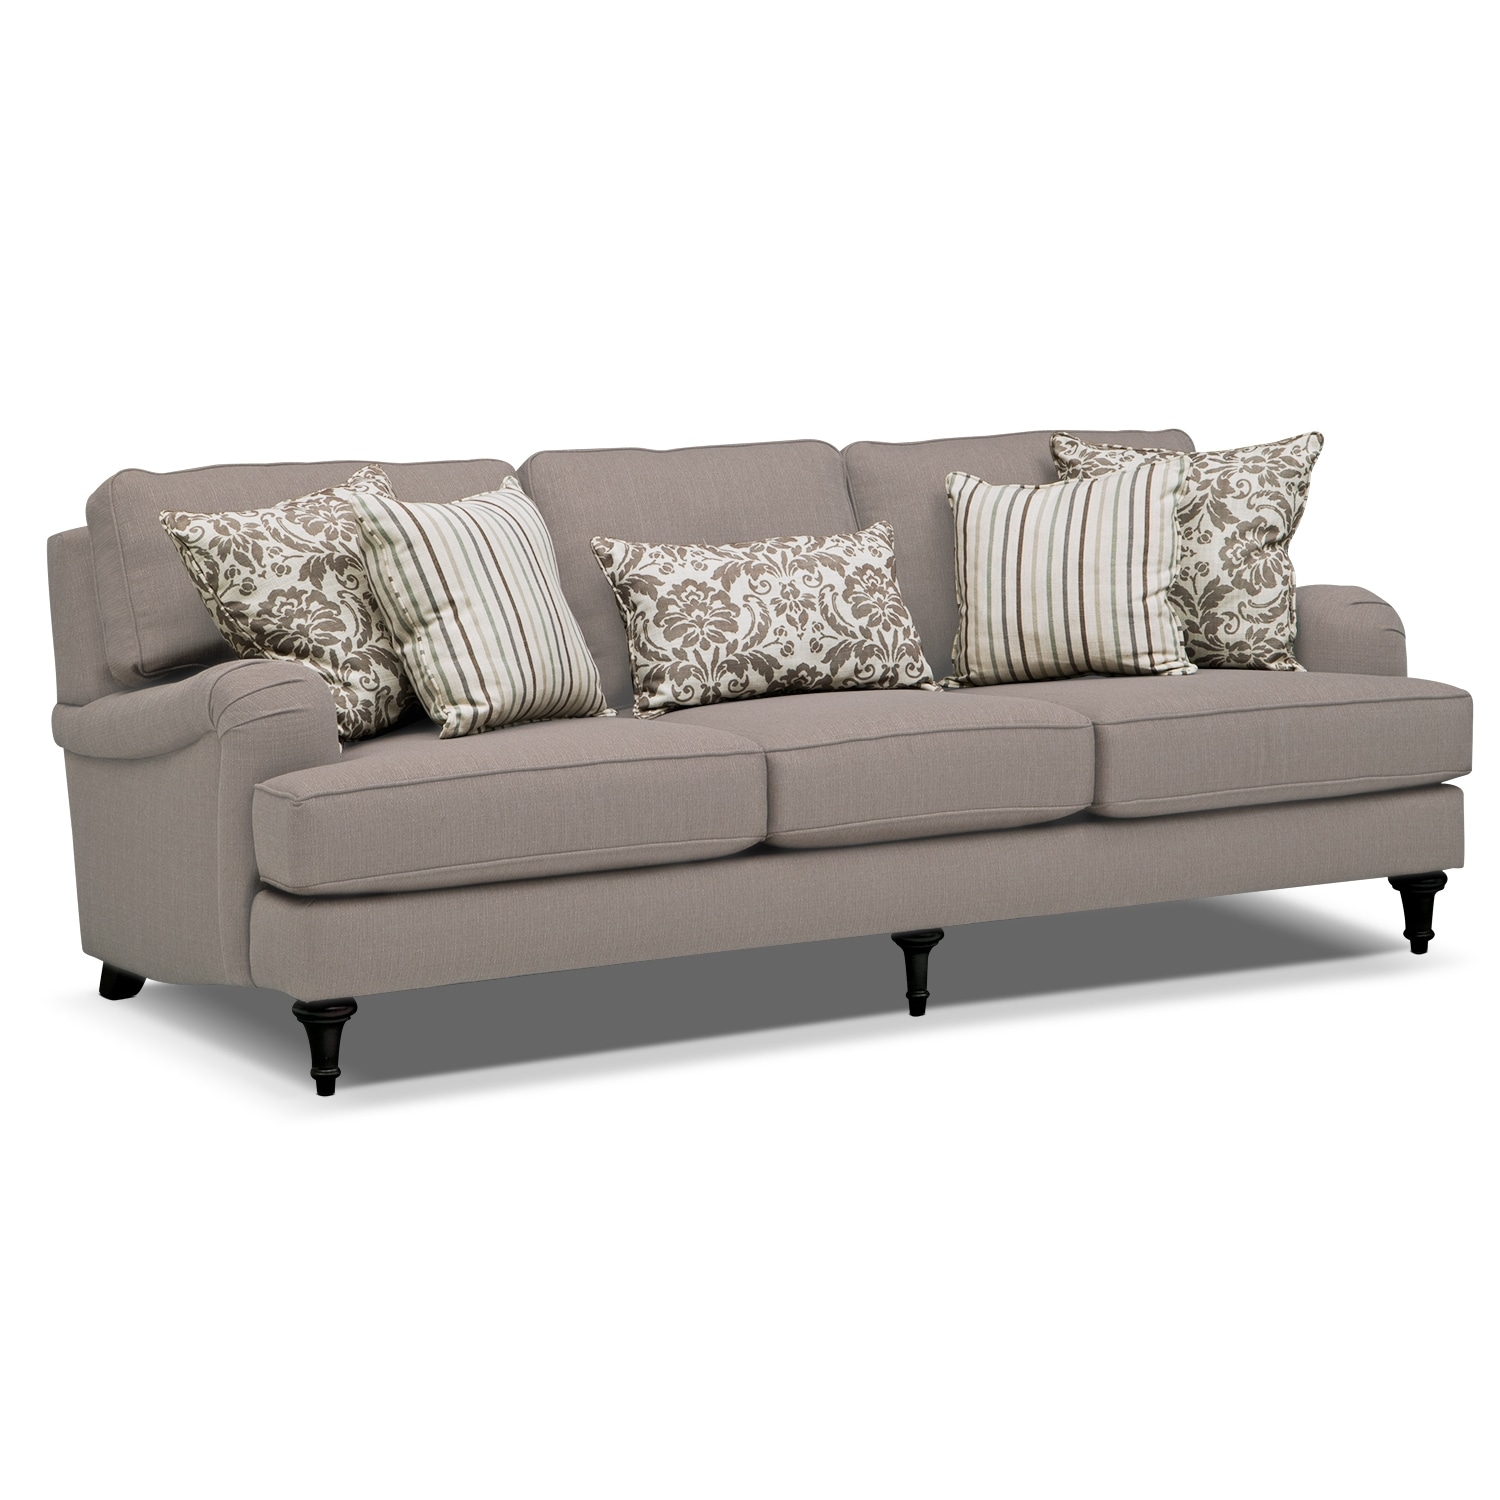 Candice sofa gray value city furniture for Furniture sofa sale